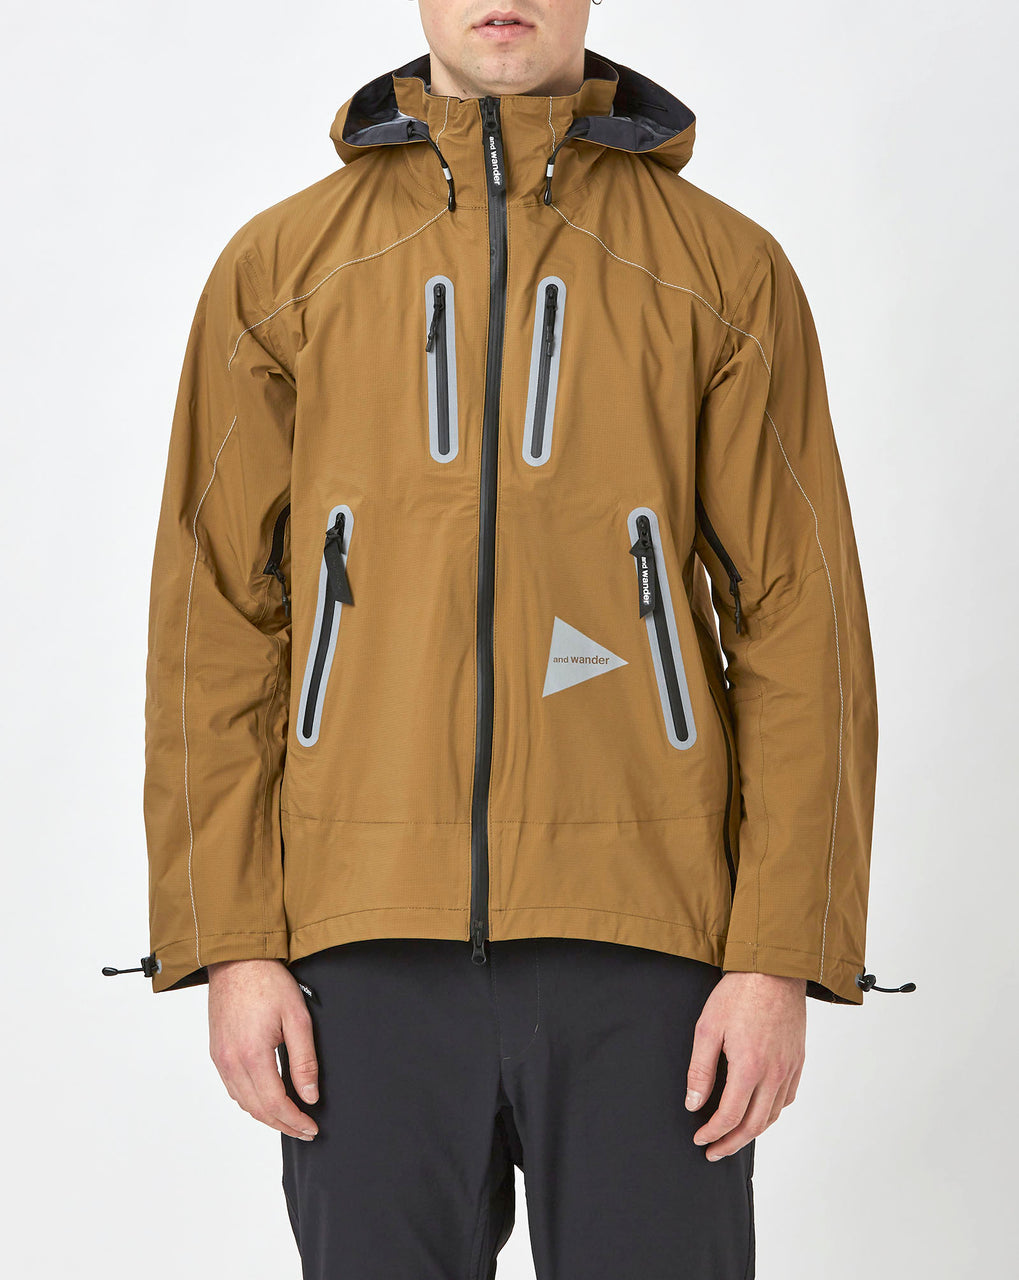 and Wander eVent Jacket (Camel)